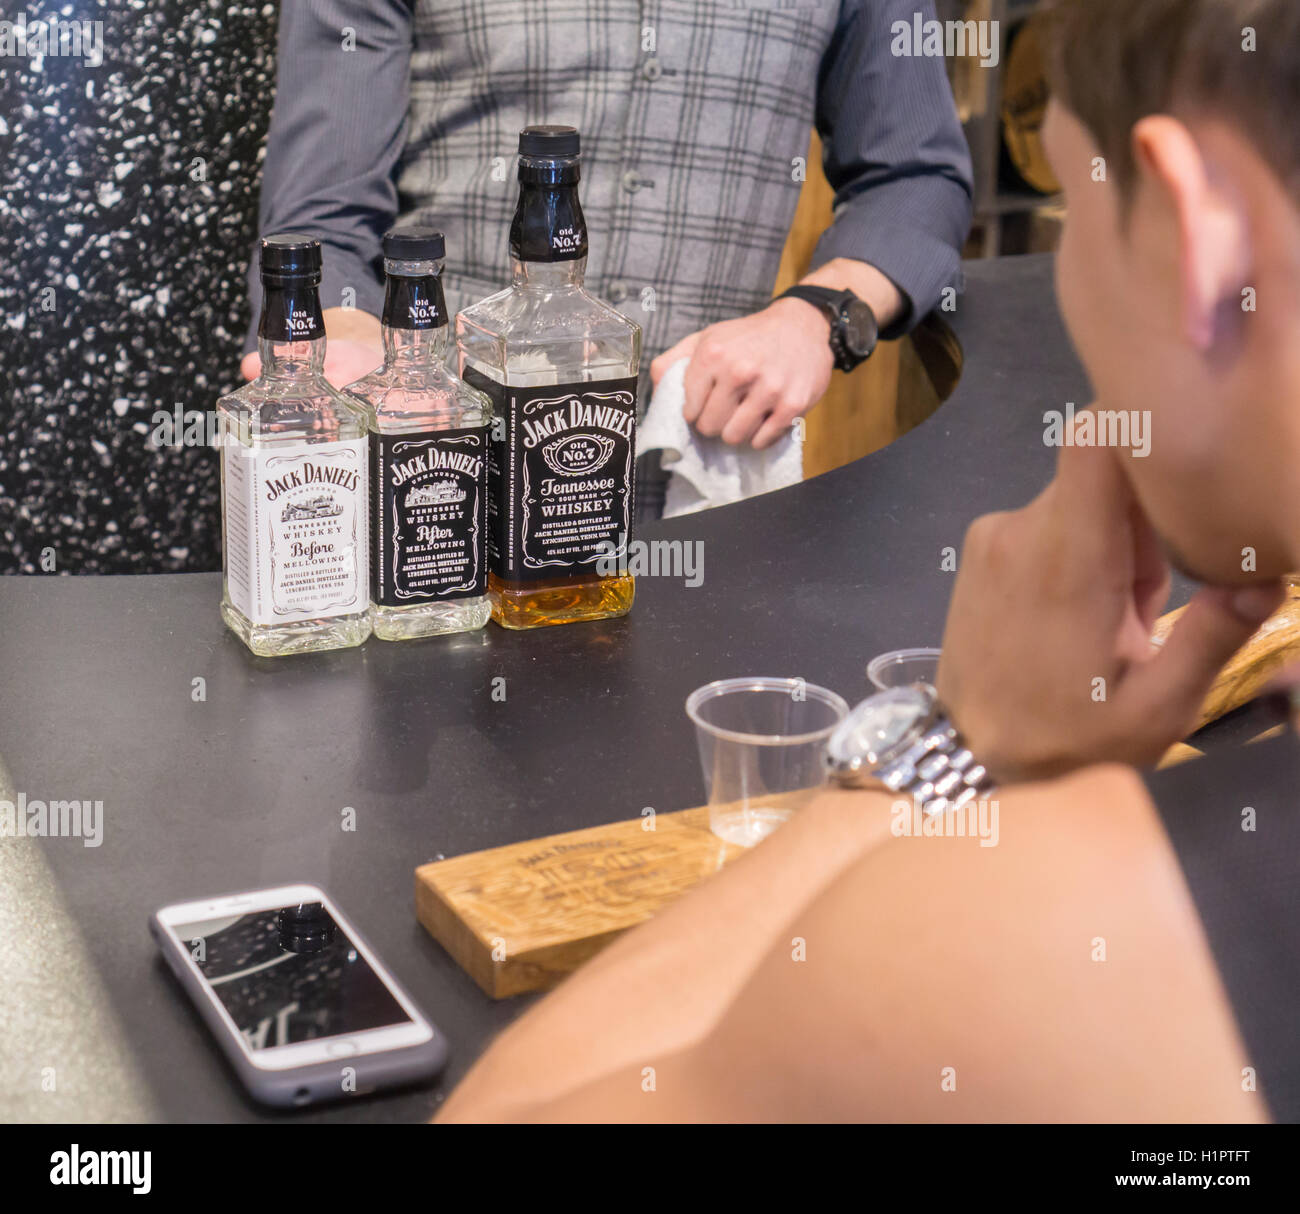 Visitors taste samples at the Jack Daniel's Lynchburg General Store pop up branding event in New York on Tuesday, Stock Photo